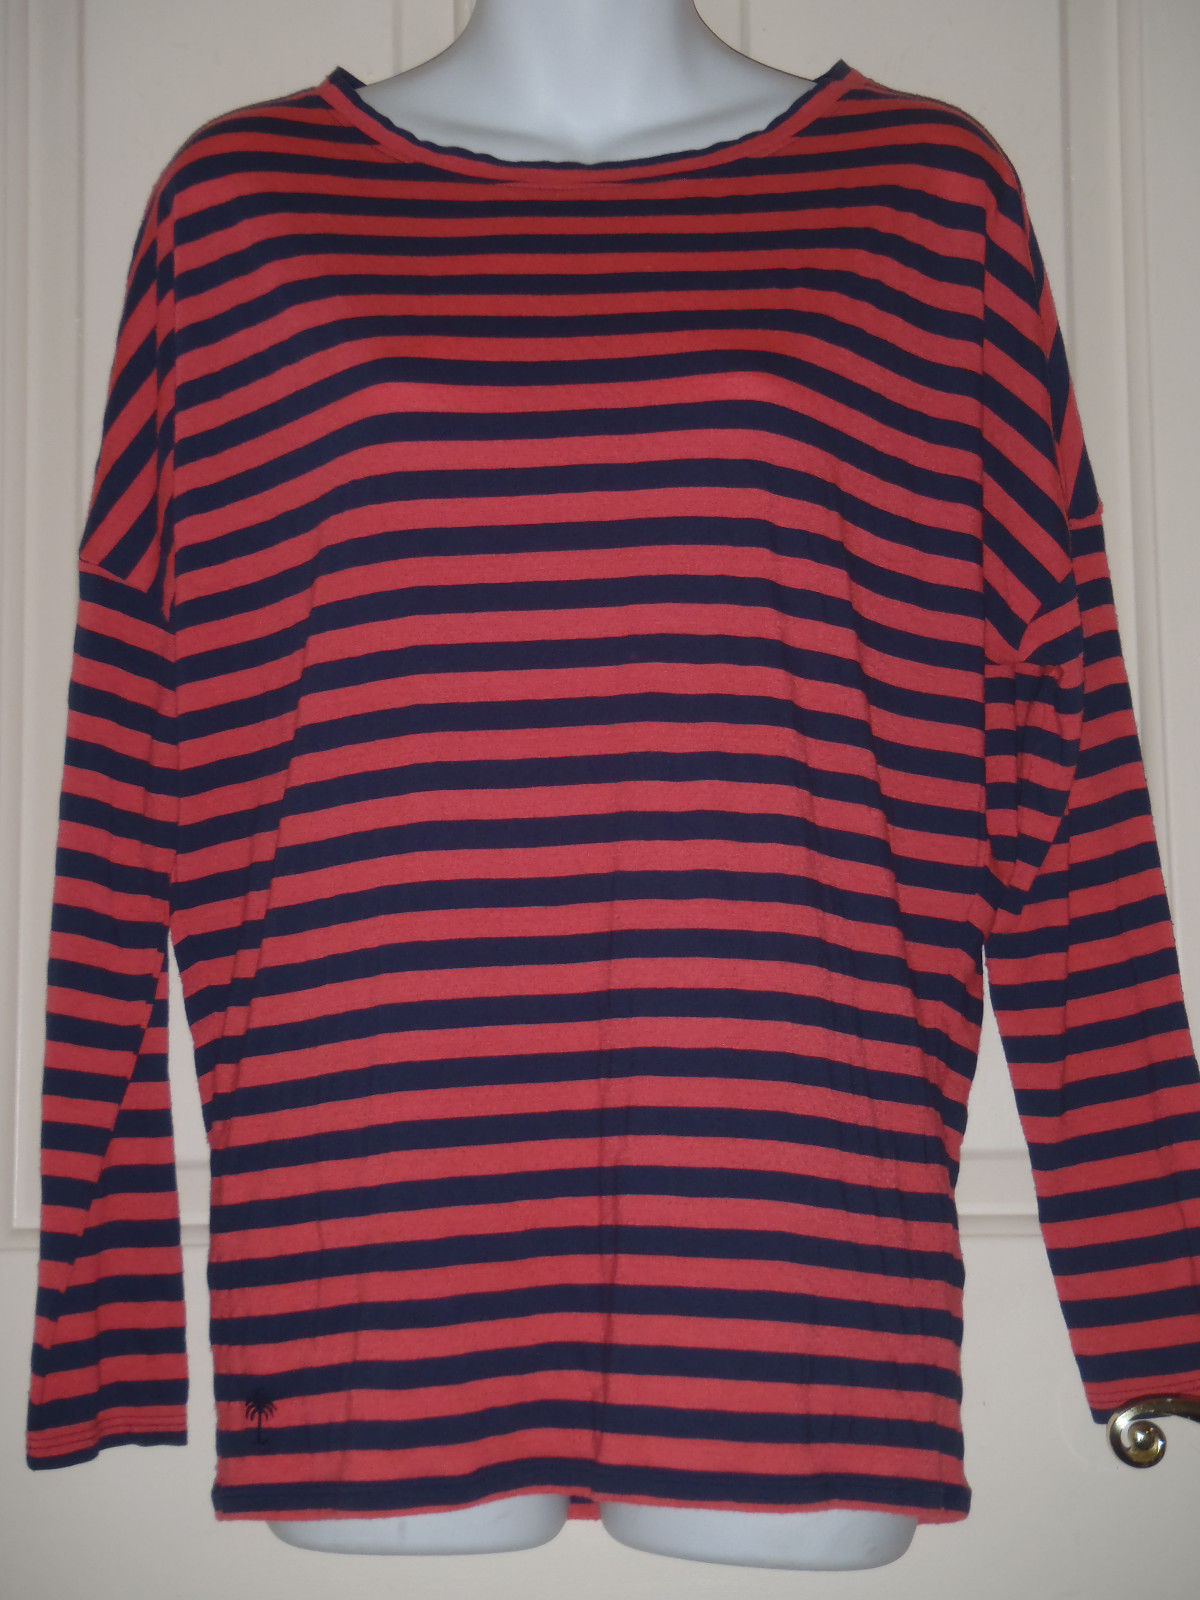 a6cf81651b4a66 Lilly Pulitzer Tina Stripe Blue Scoopneck and 48 similar items